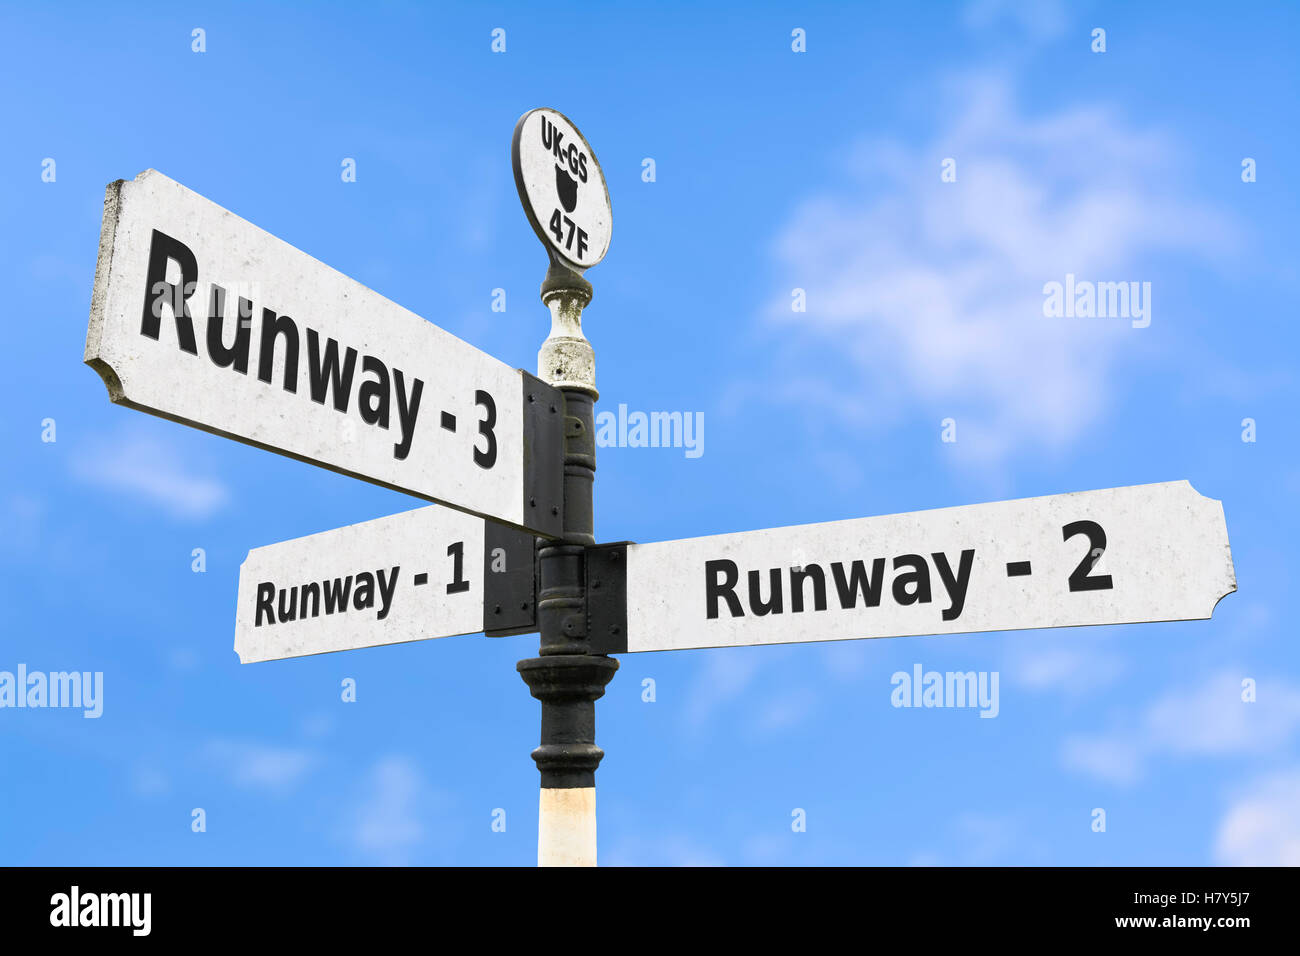 Expansion of airport runways concept sign. - Stock Image